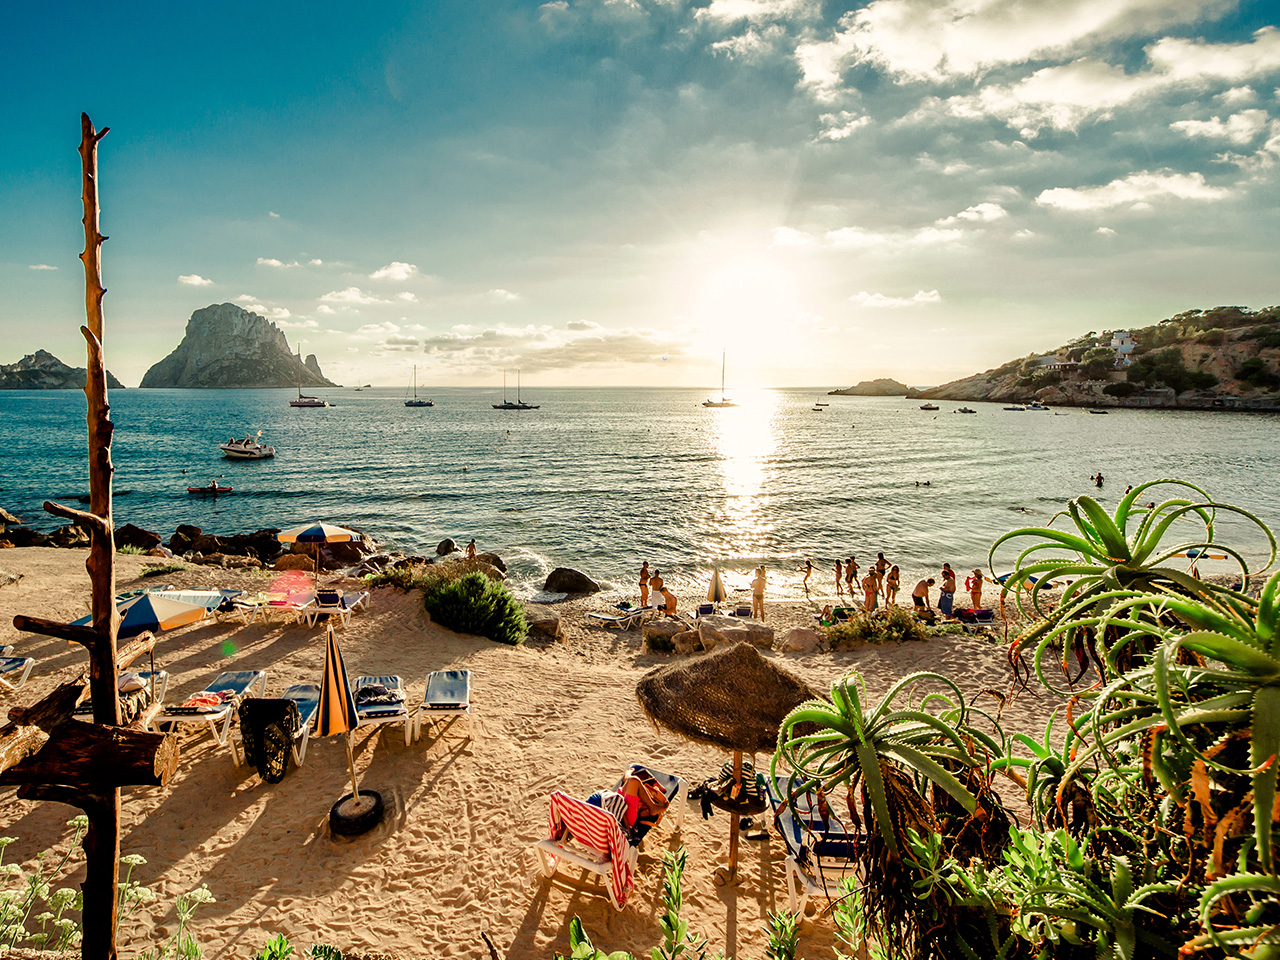 From siesta to fiesta: get the party started in Spain